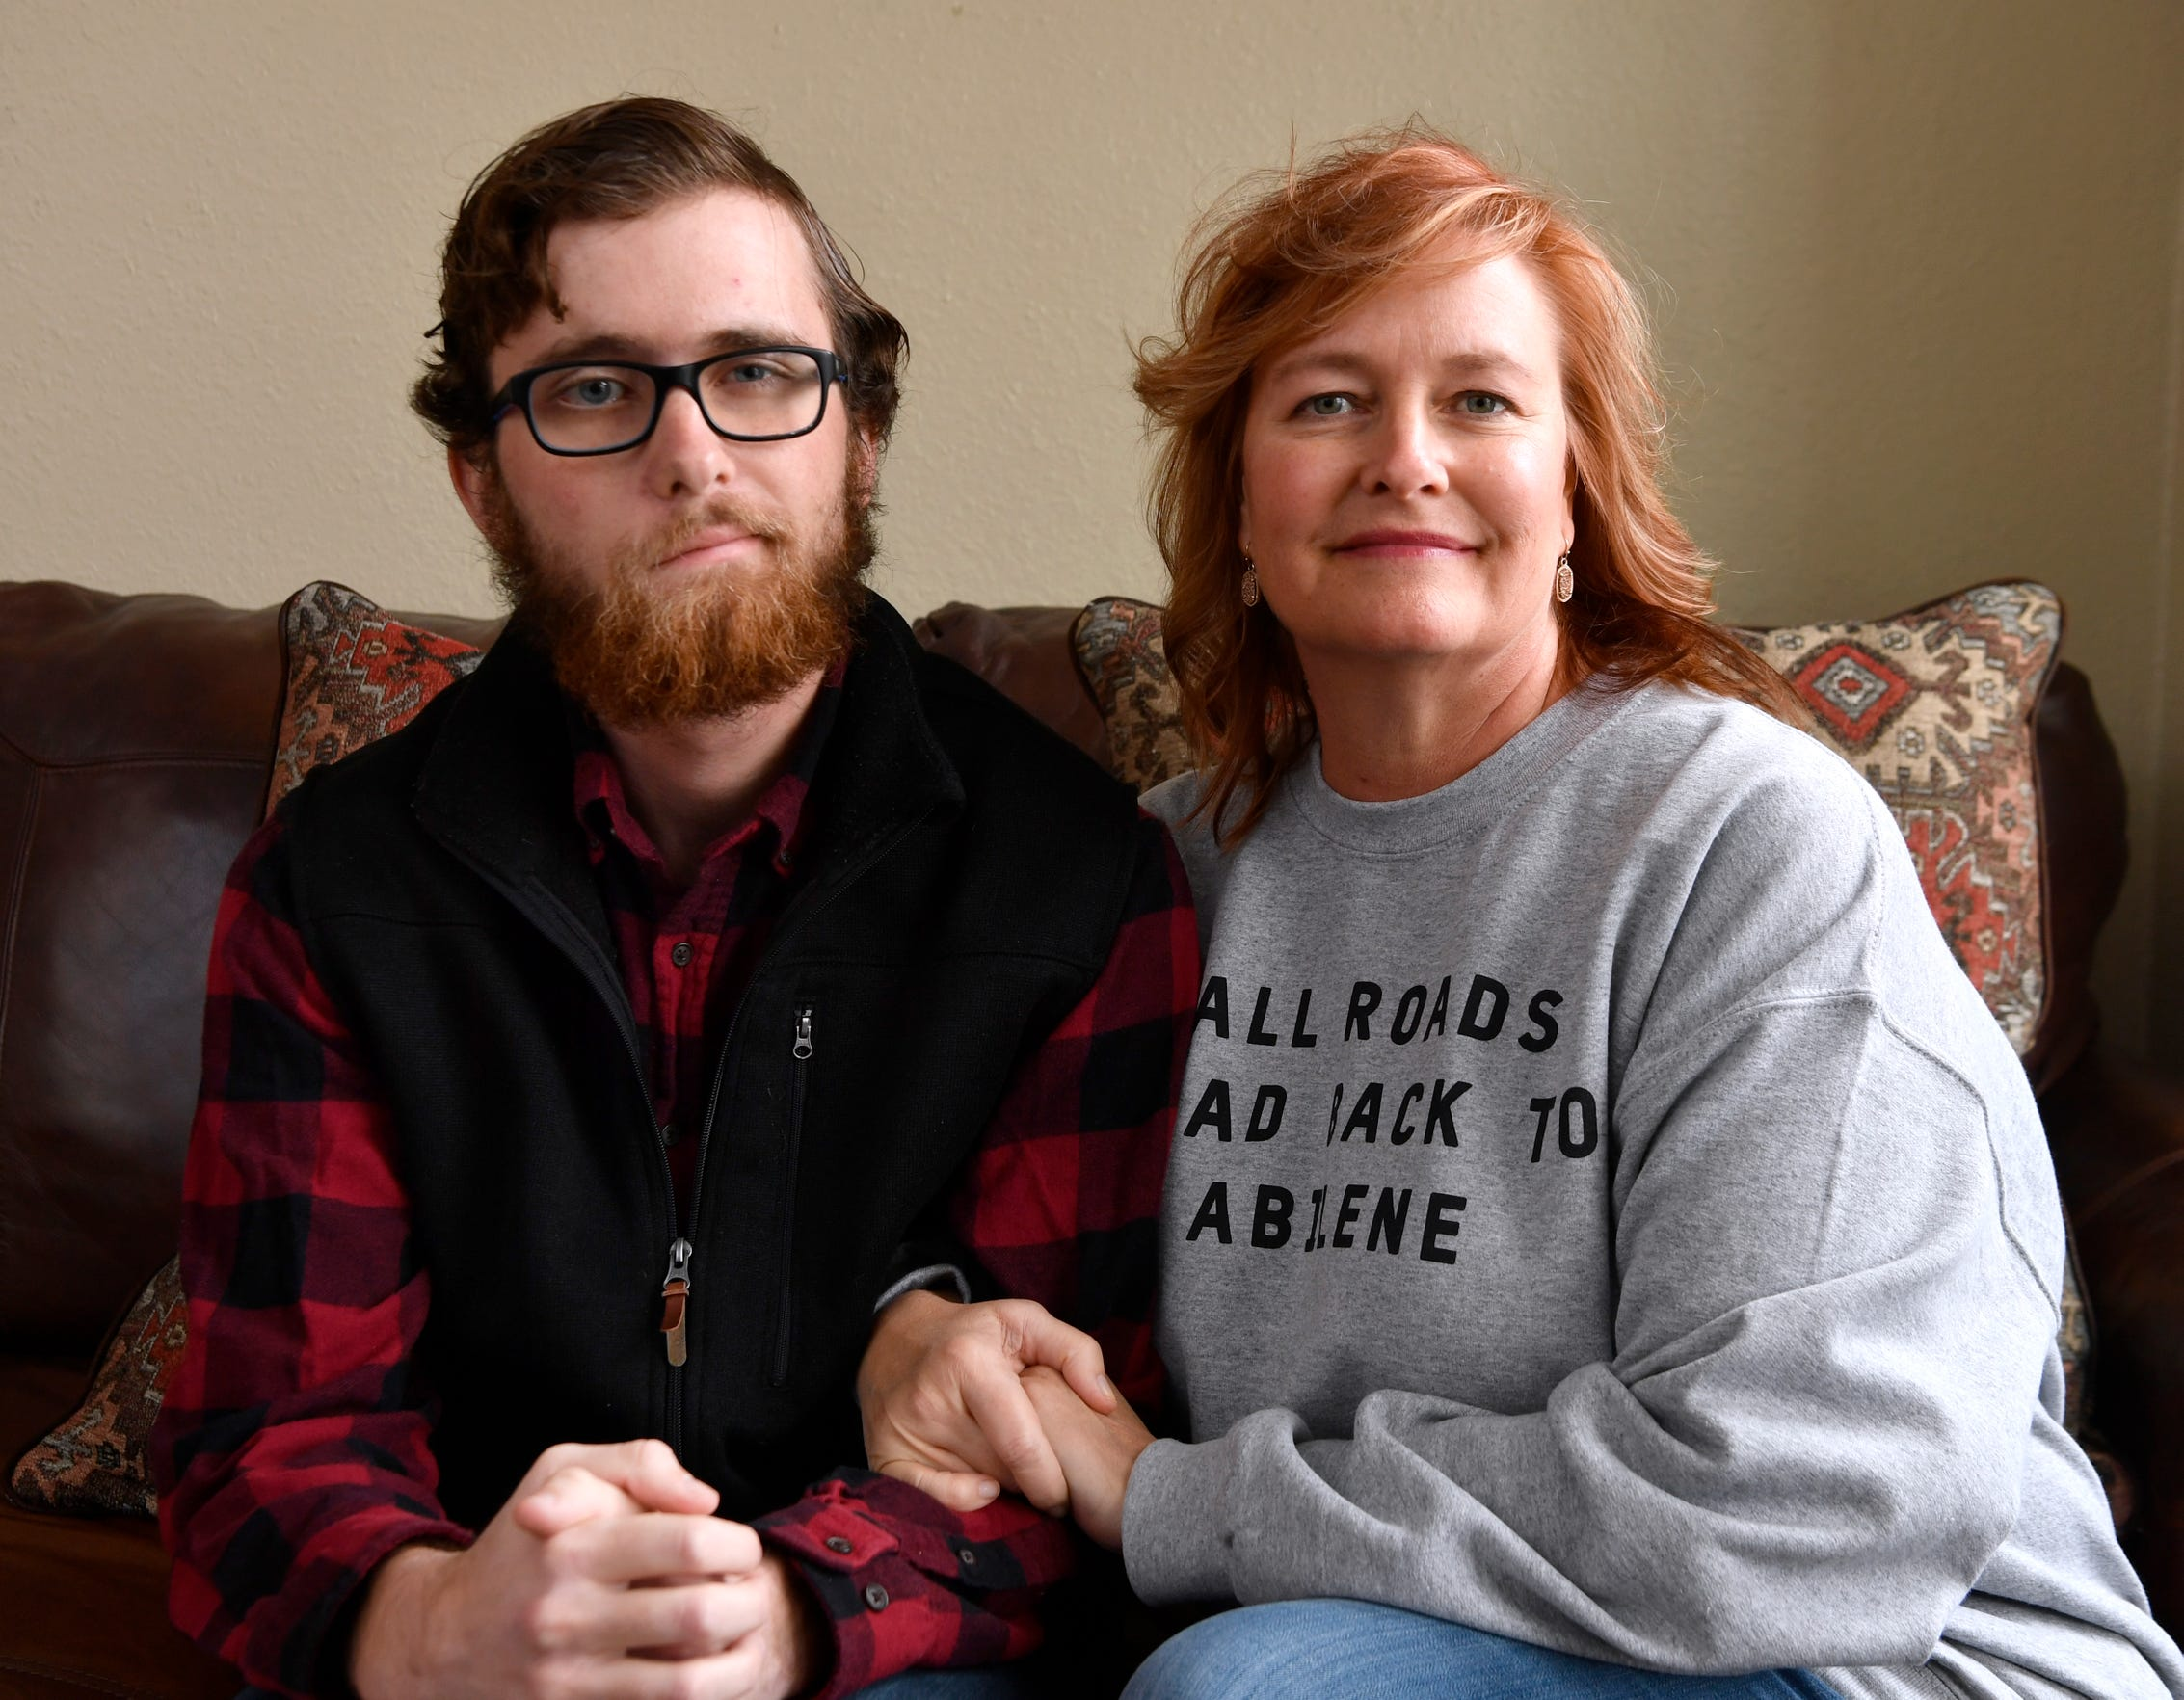 Jack Marcelain, left, survived a benign brain tumor diagnosed in 2005, when Marcelain was 6 years old. He's now a social work student at Abilene Christian University, studying to one day help families who are enduring what he and his suffered through. His mother, Tammy Marcelain, right, supports him through his journey.